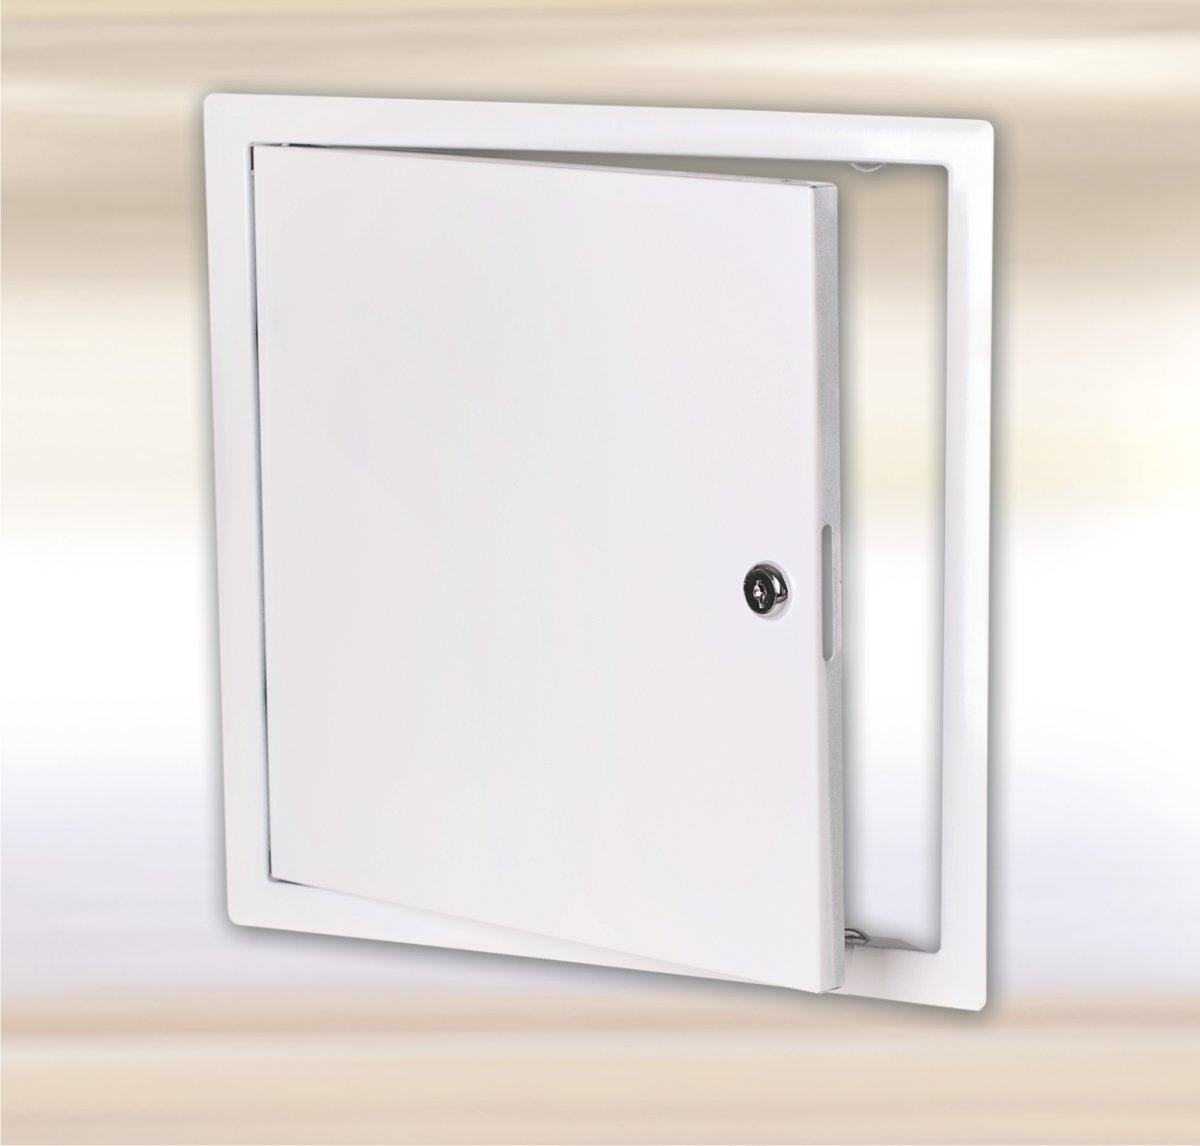 12x12 inch Metal Access Door with Cylinder Lock, B3-series FF Systems Inc